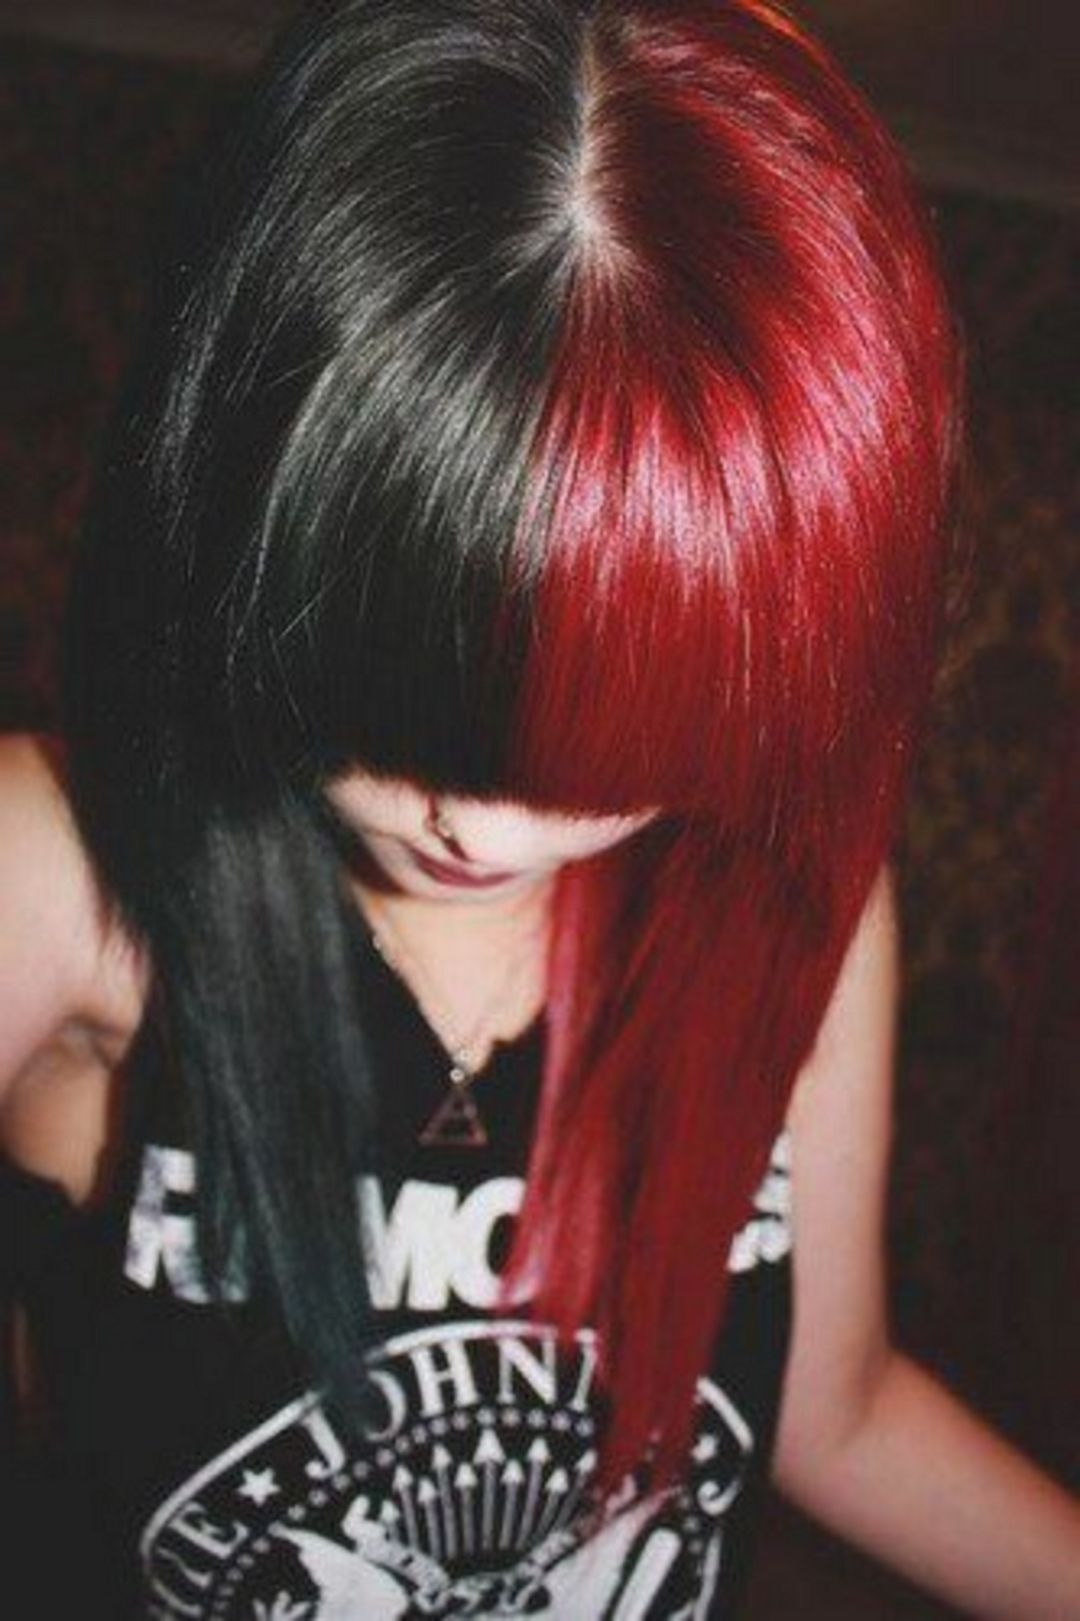 Lovely 35 Unique Half And Half Hair Color Ideas For Cute Women Http Uniqlog Com 35 Unique Half And Half Hair C Hair Styles Half And Half Hair Black Red Hair